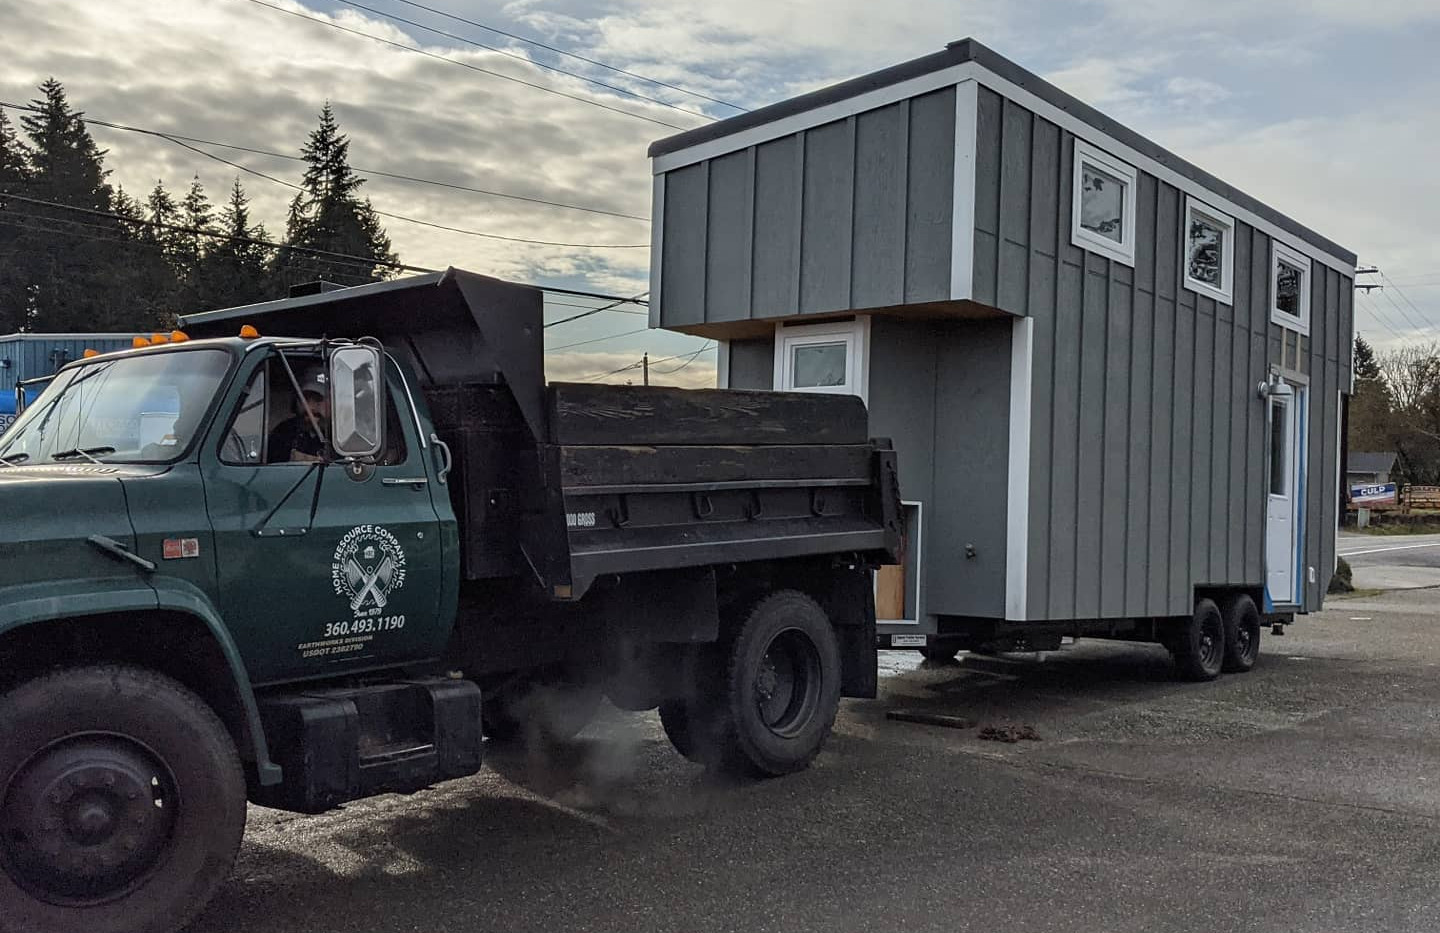 Tiny Home hooked up for tow